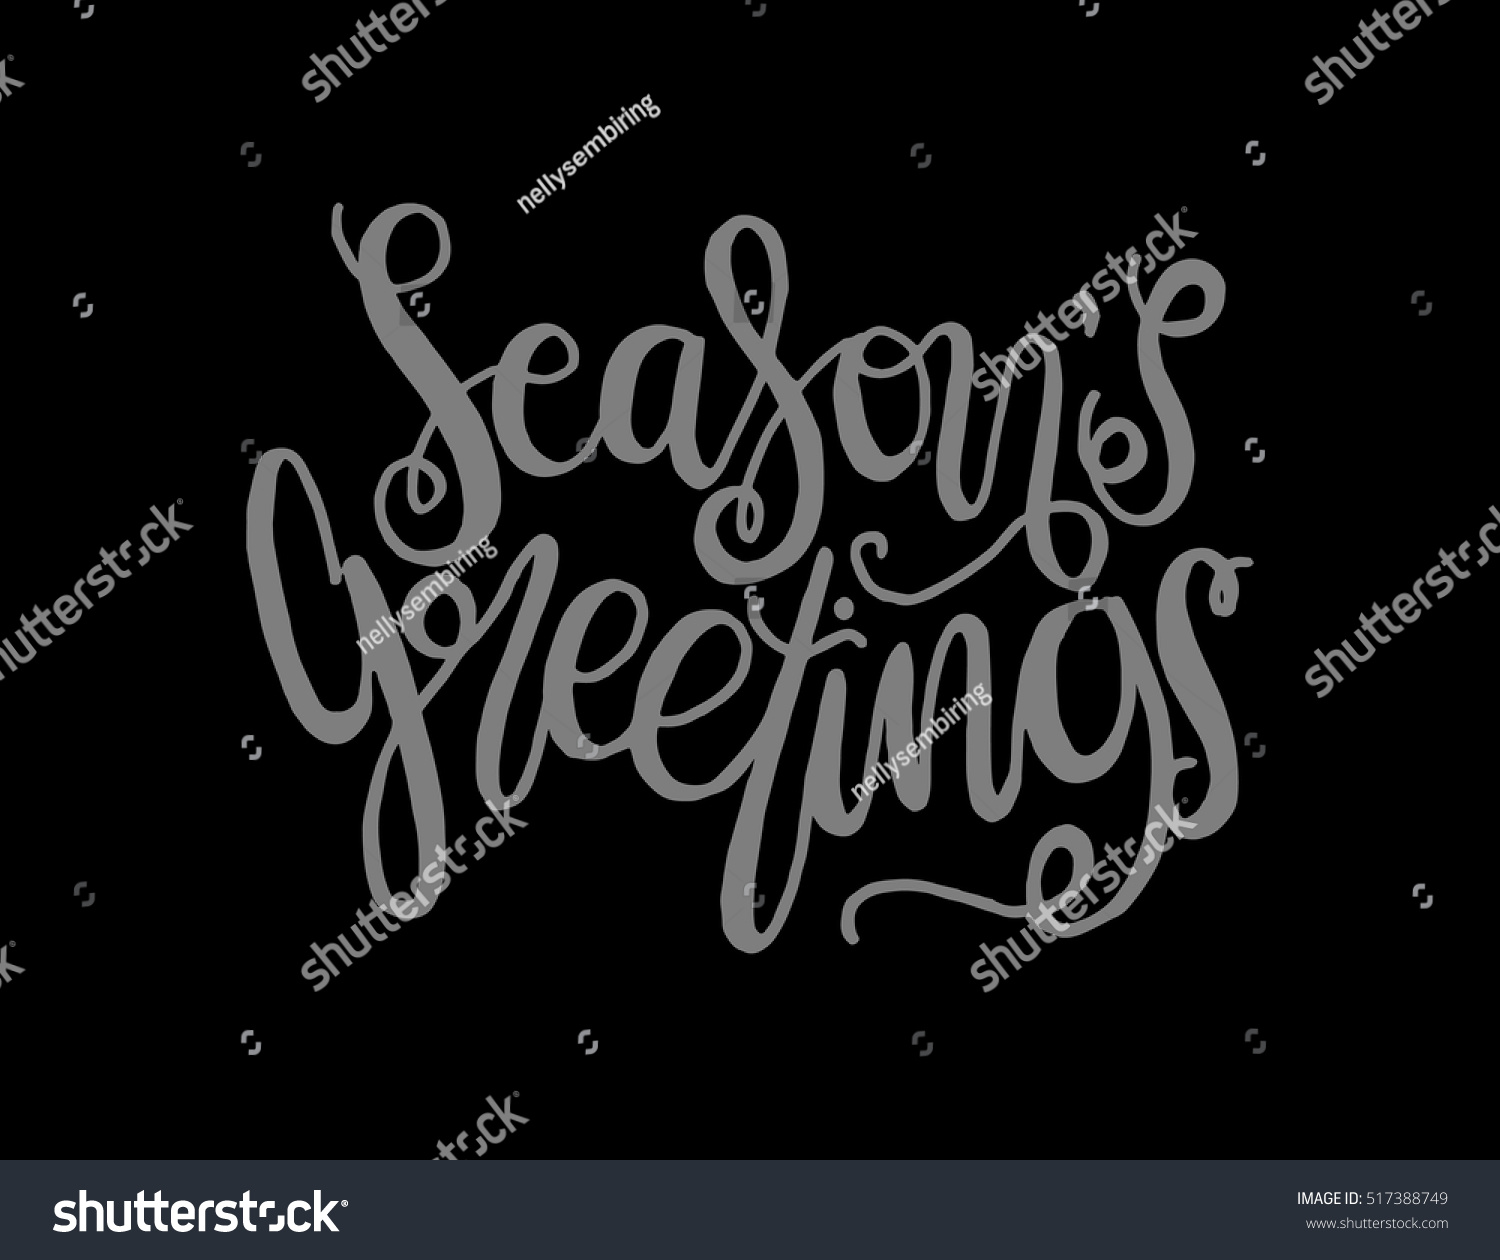 Seasons Greetings Hand Lettered Quote Bible Verse Modern